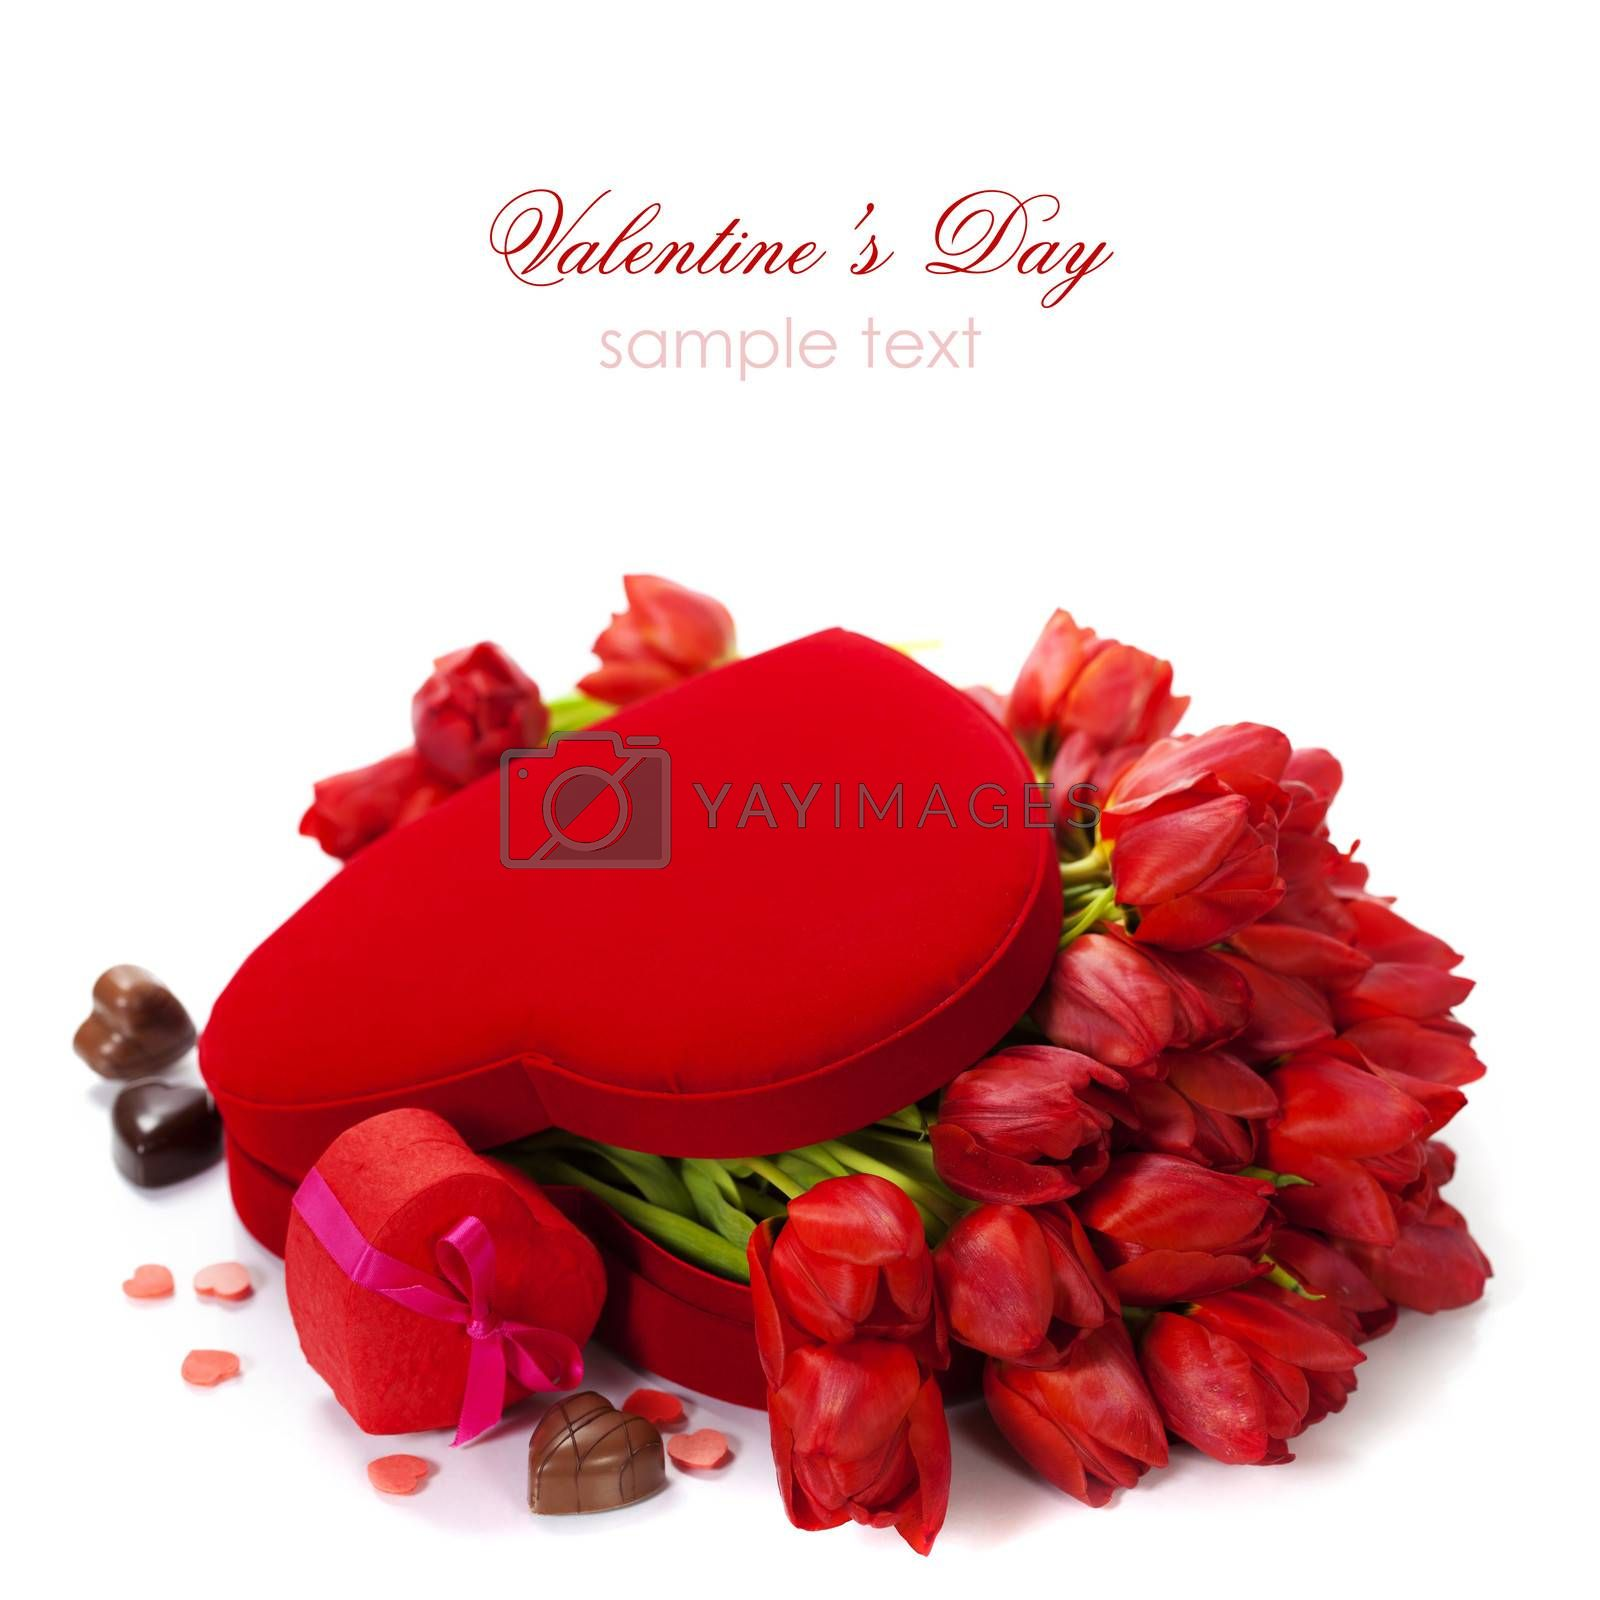 Valentine composition with red tulips in the box (with easy removable text)